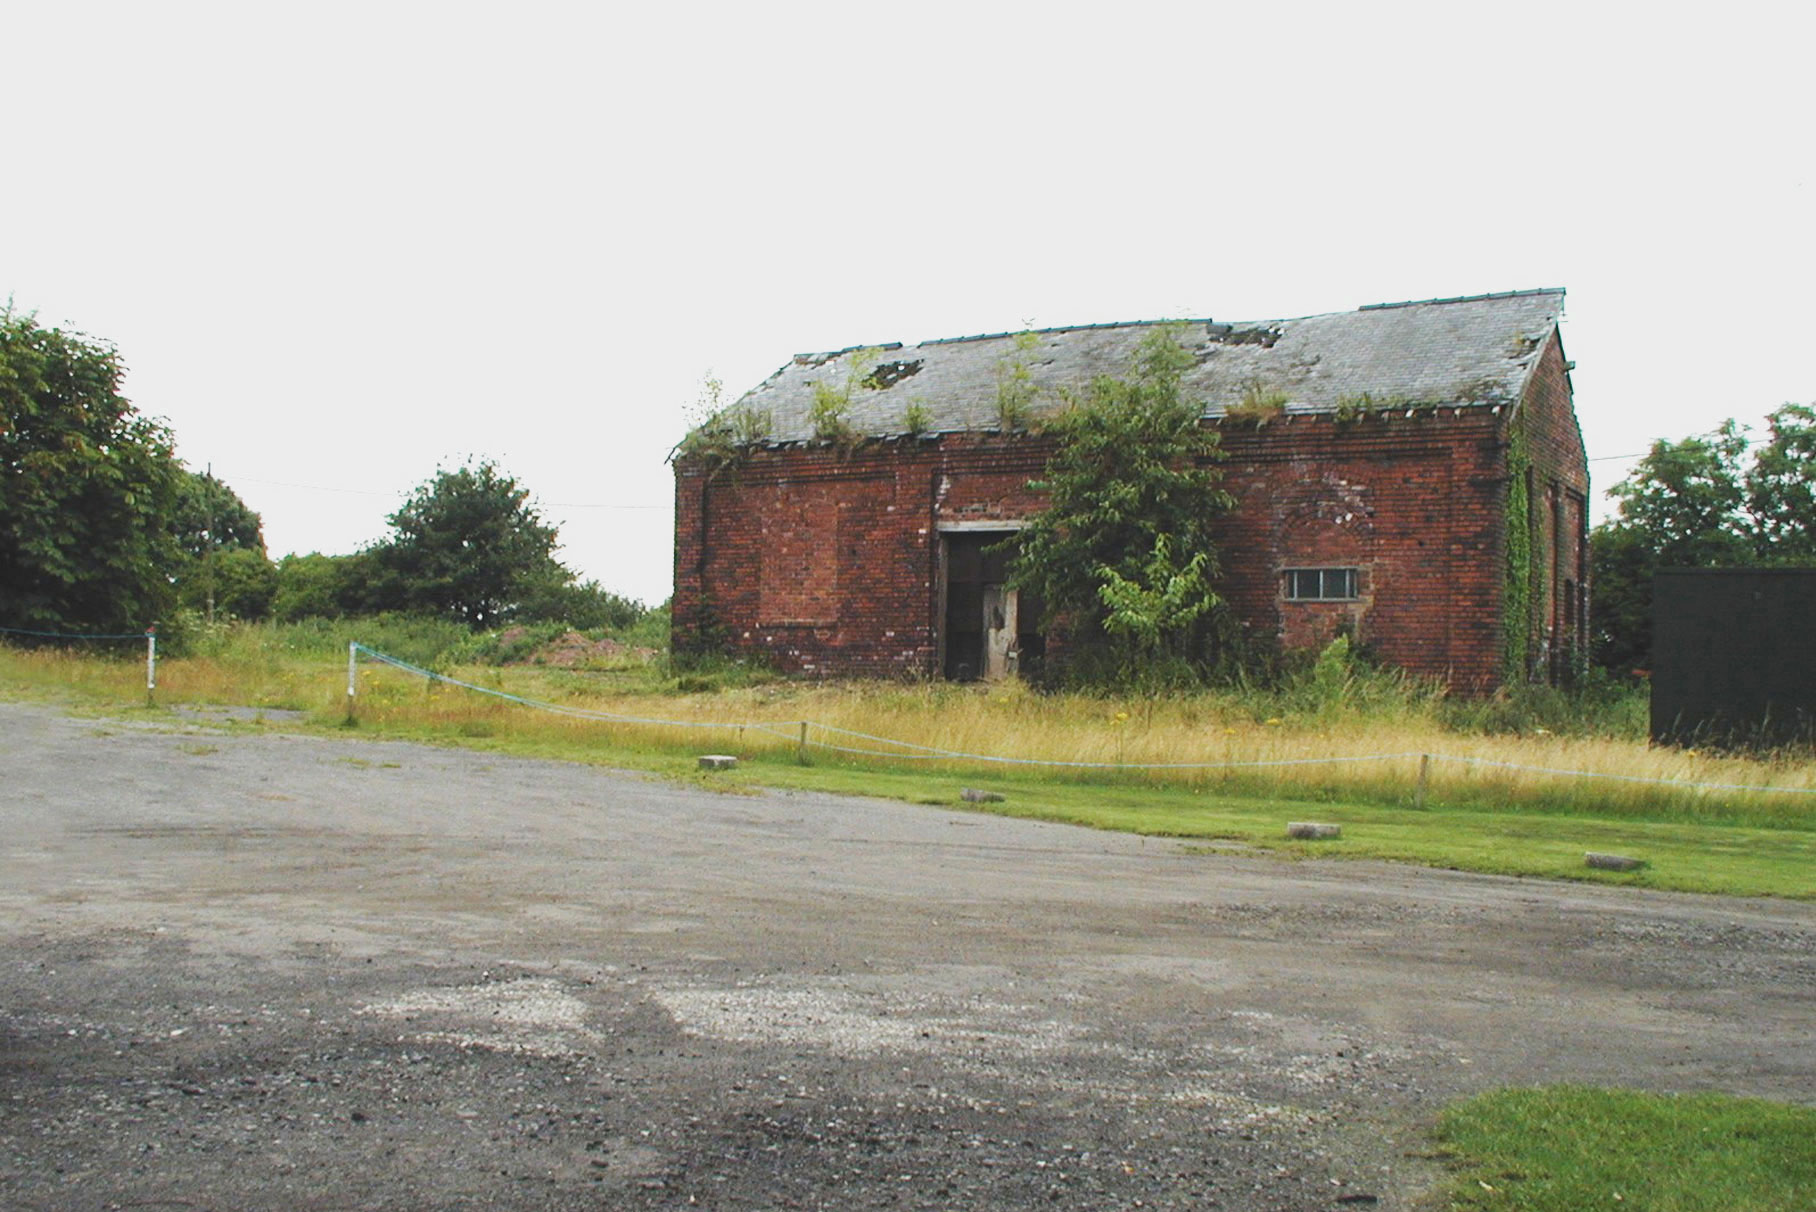 Barlborough No.2-Colliery - Before works L1